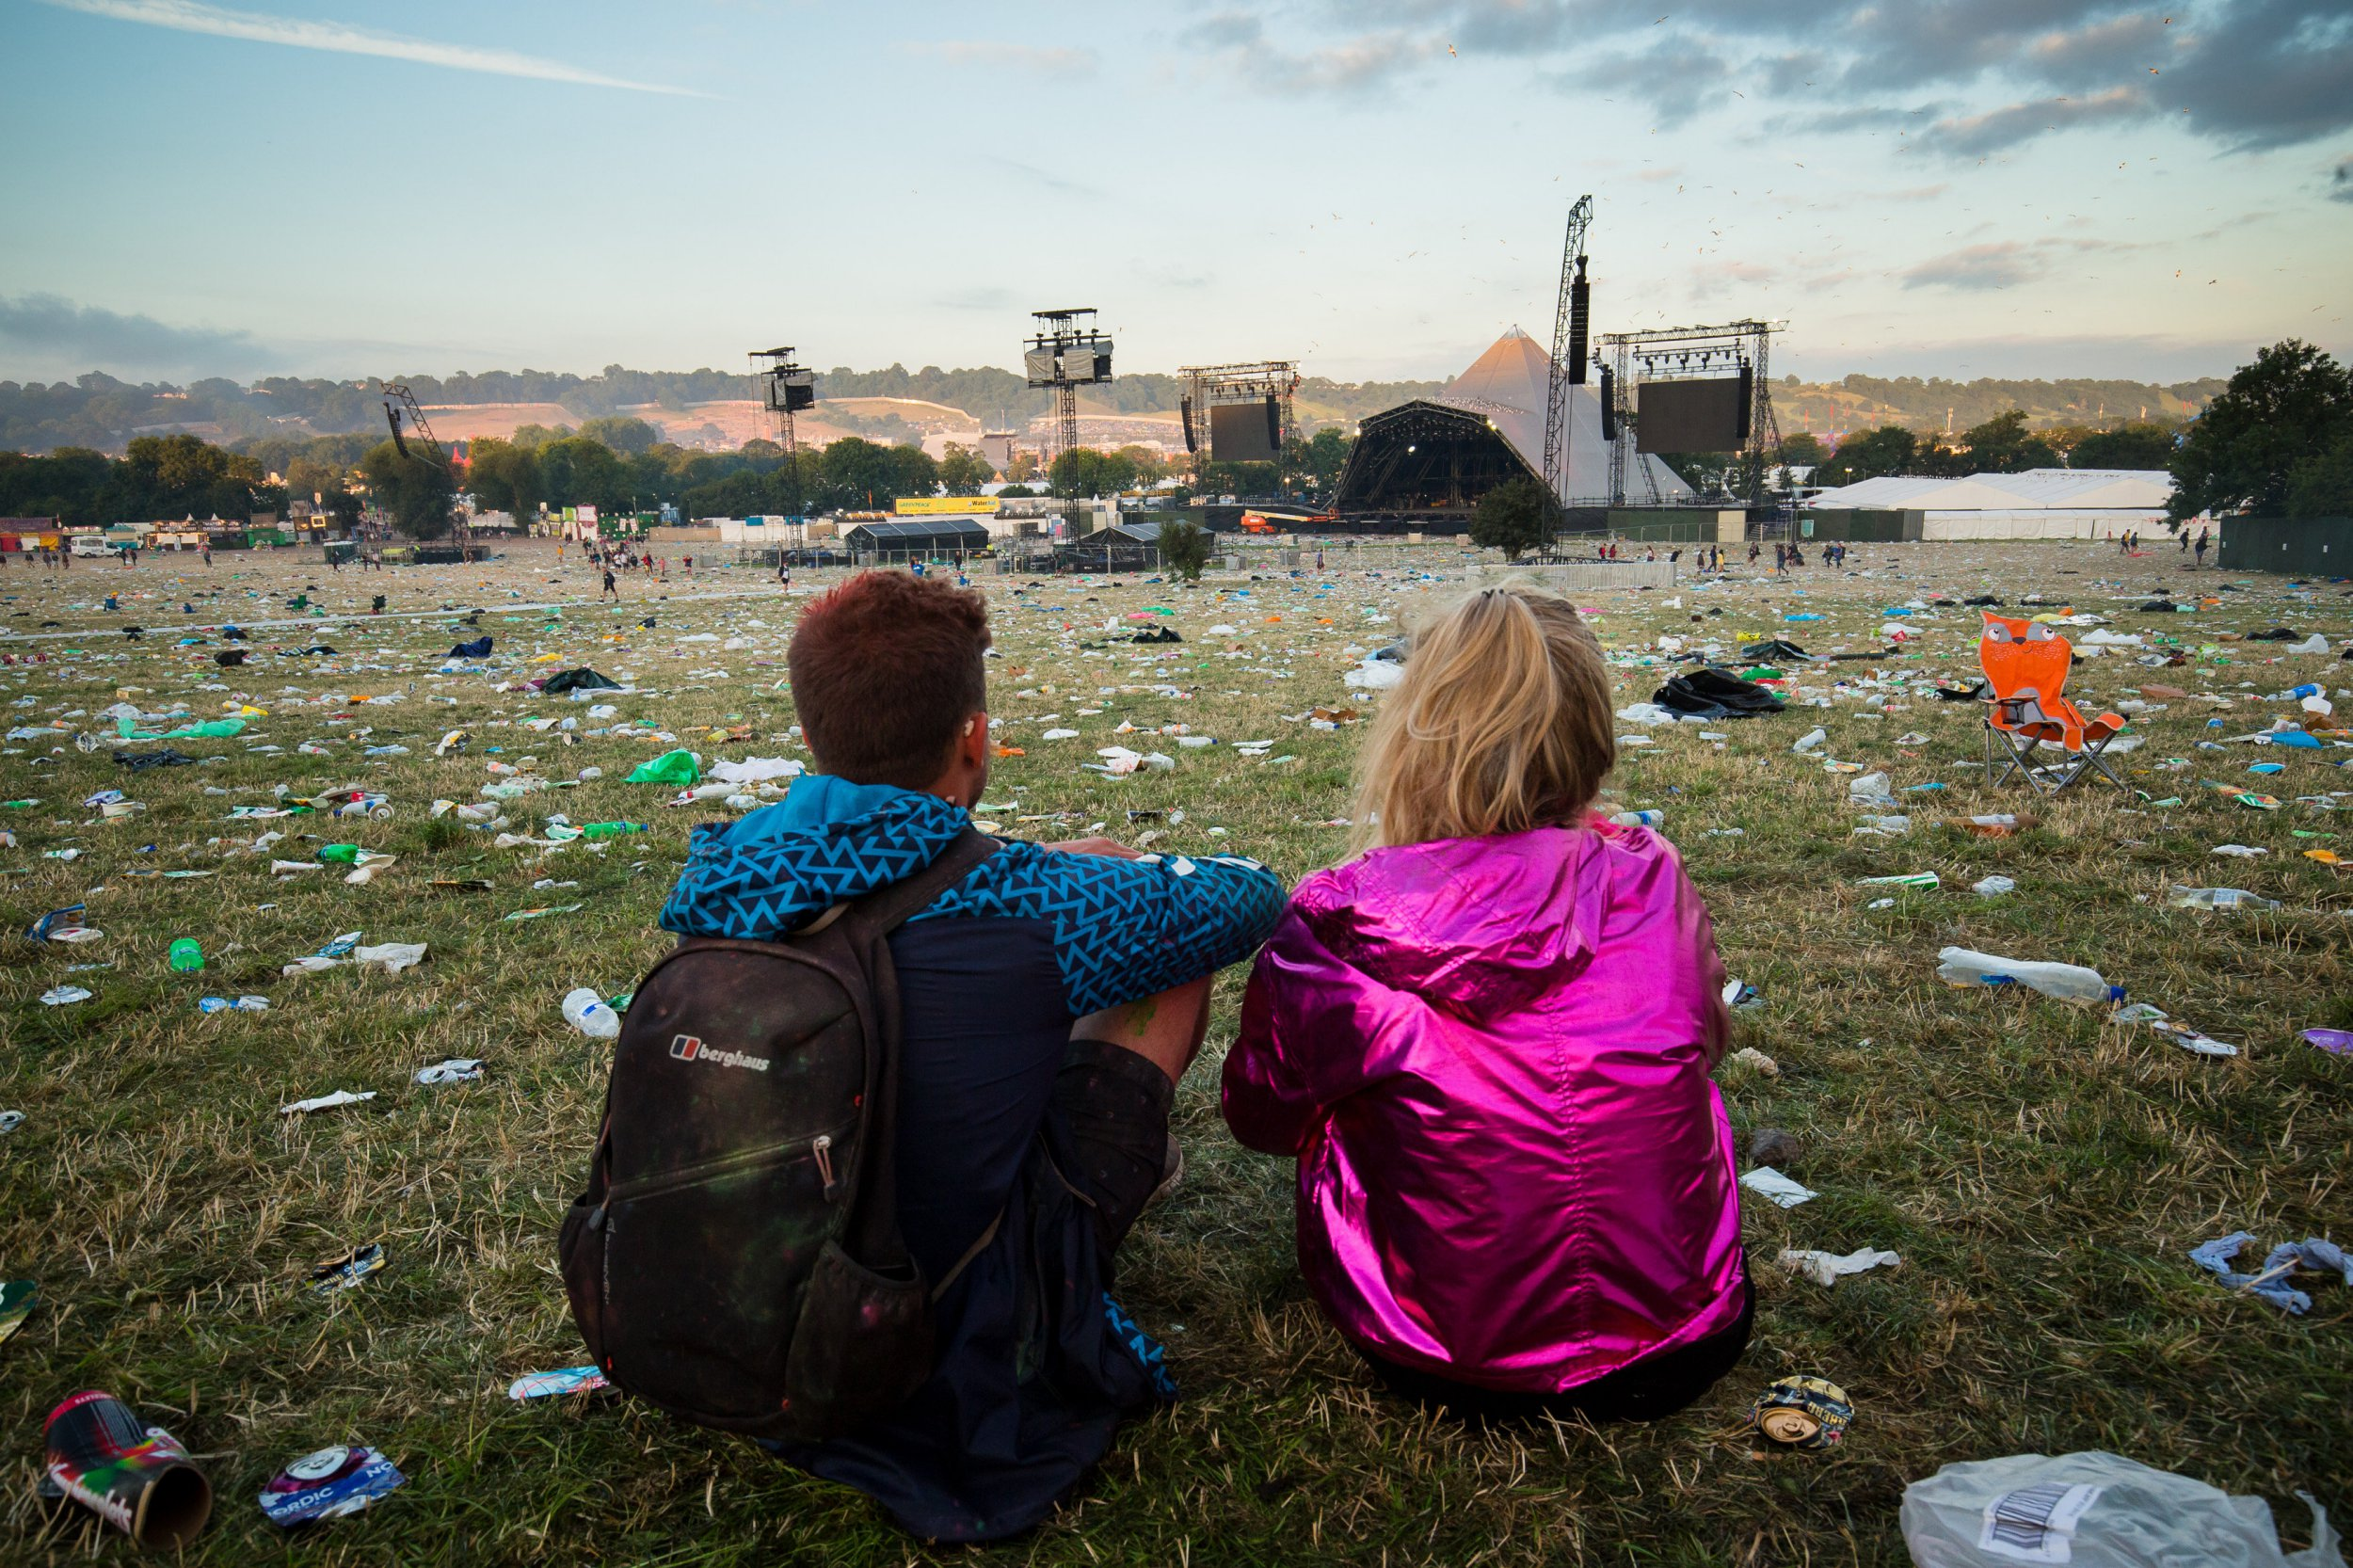 Why are festivals in the UK ignoring the very real issue of rape and sexual assault?